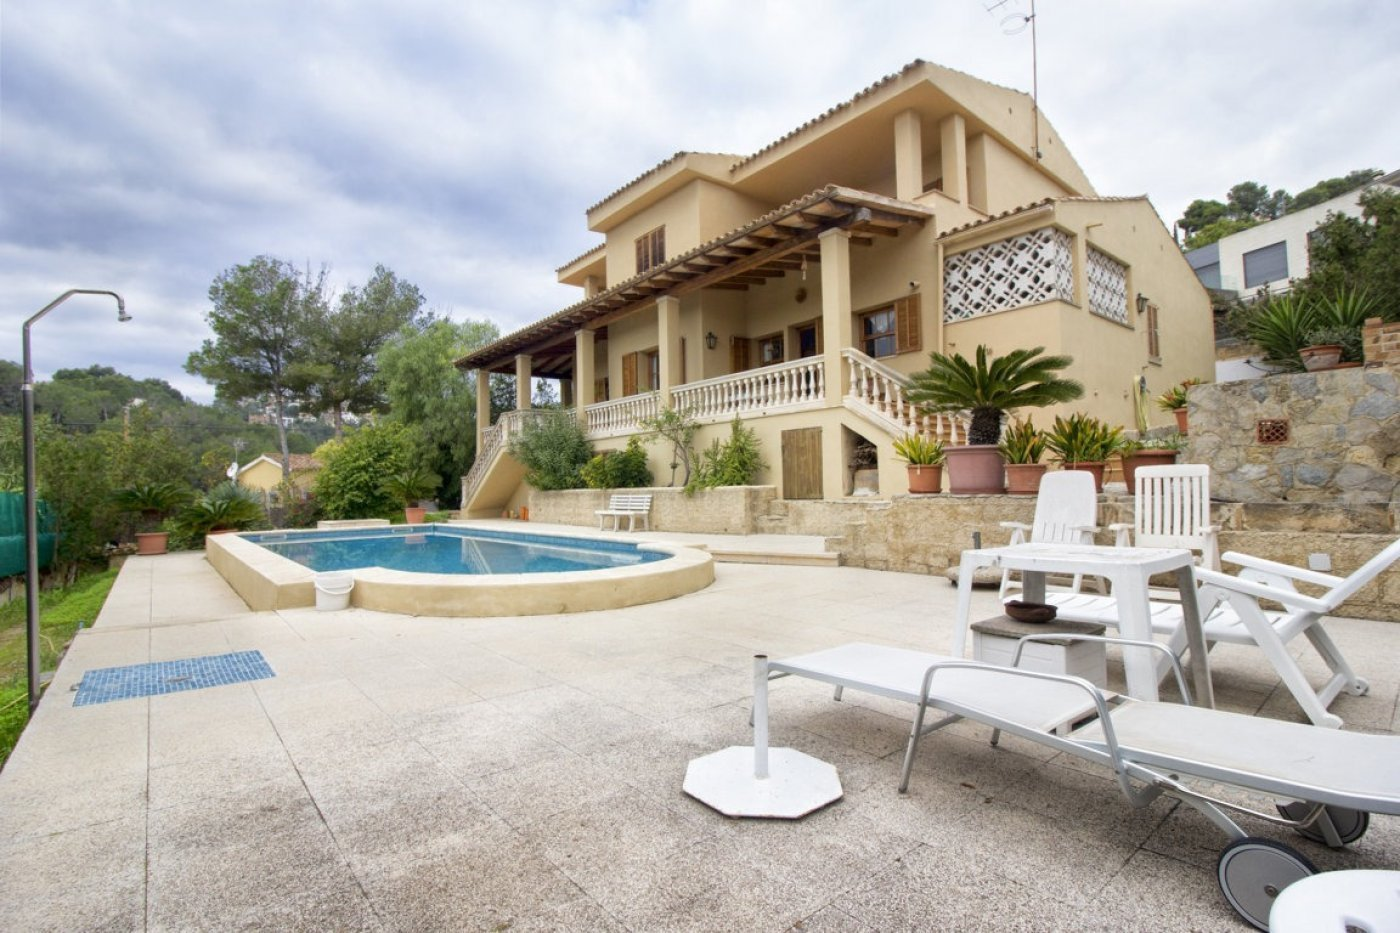 Villa in Costa de la Calma, Balearic Islands, Spain 1